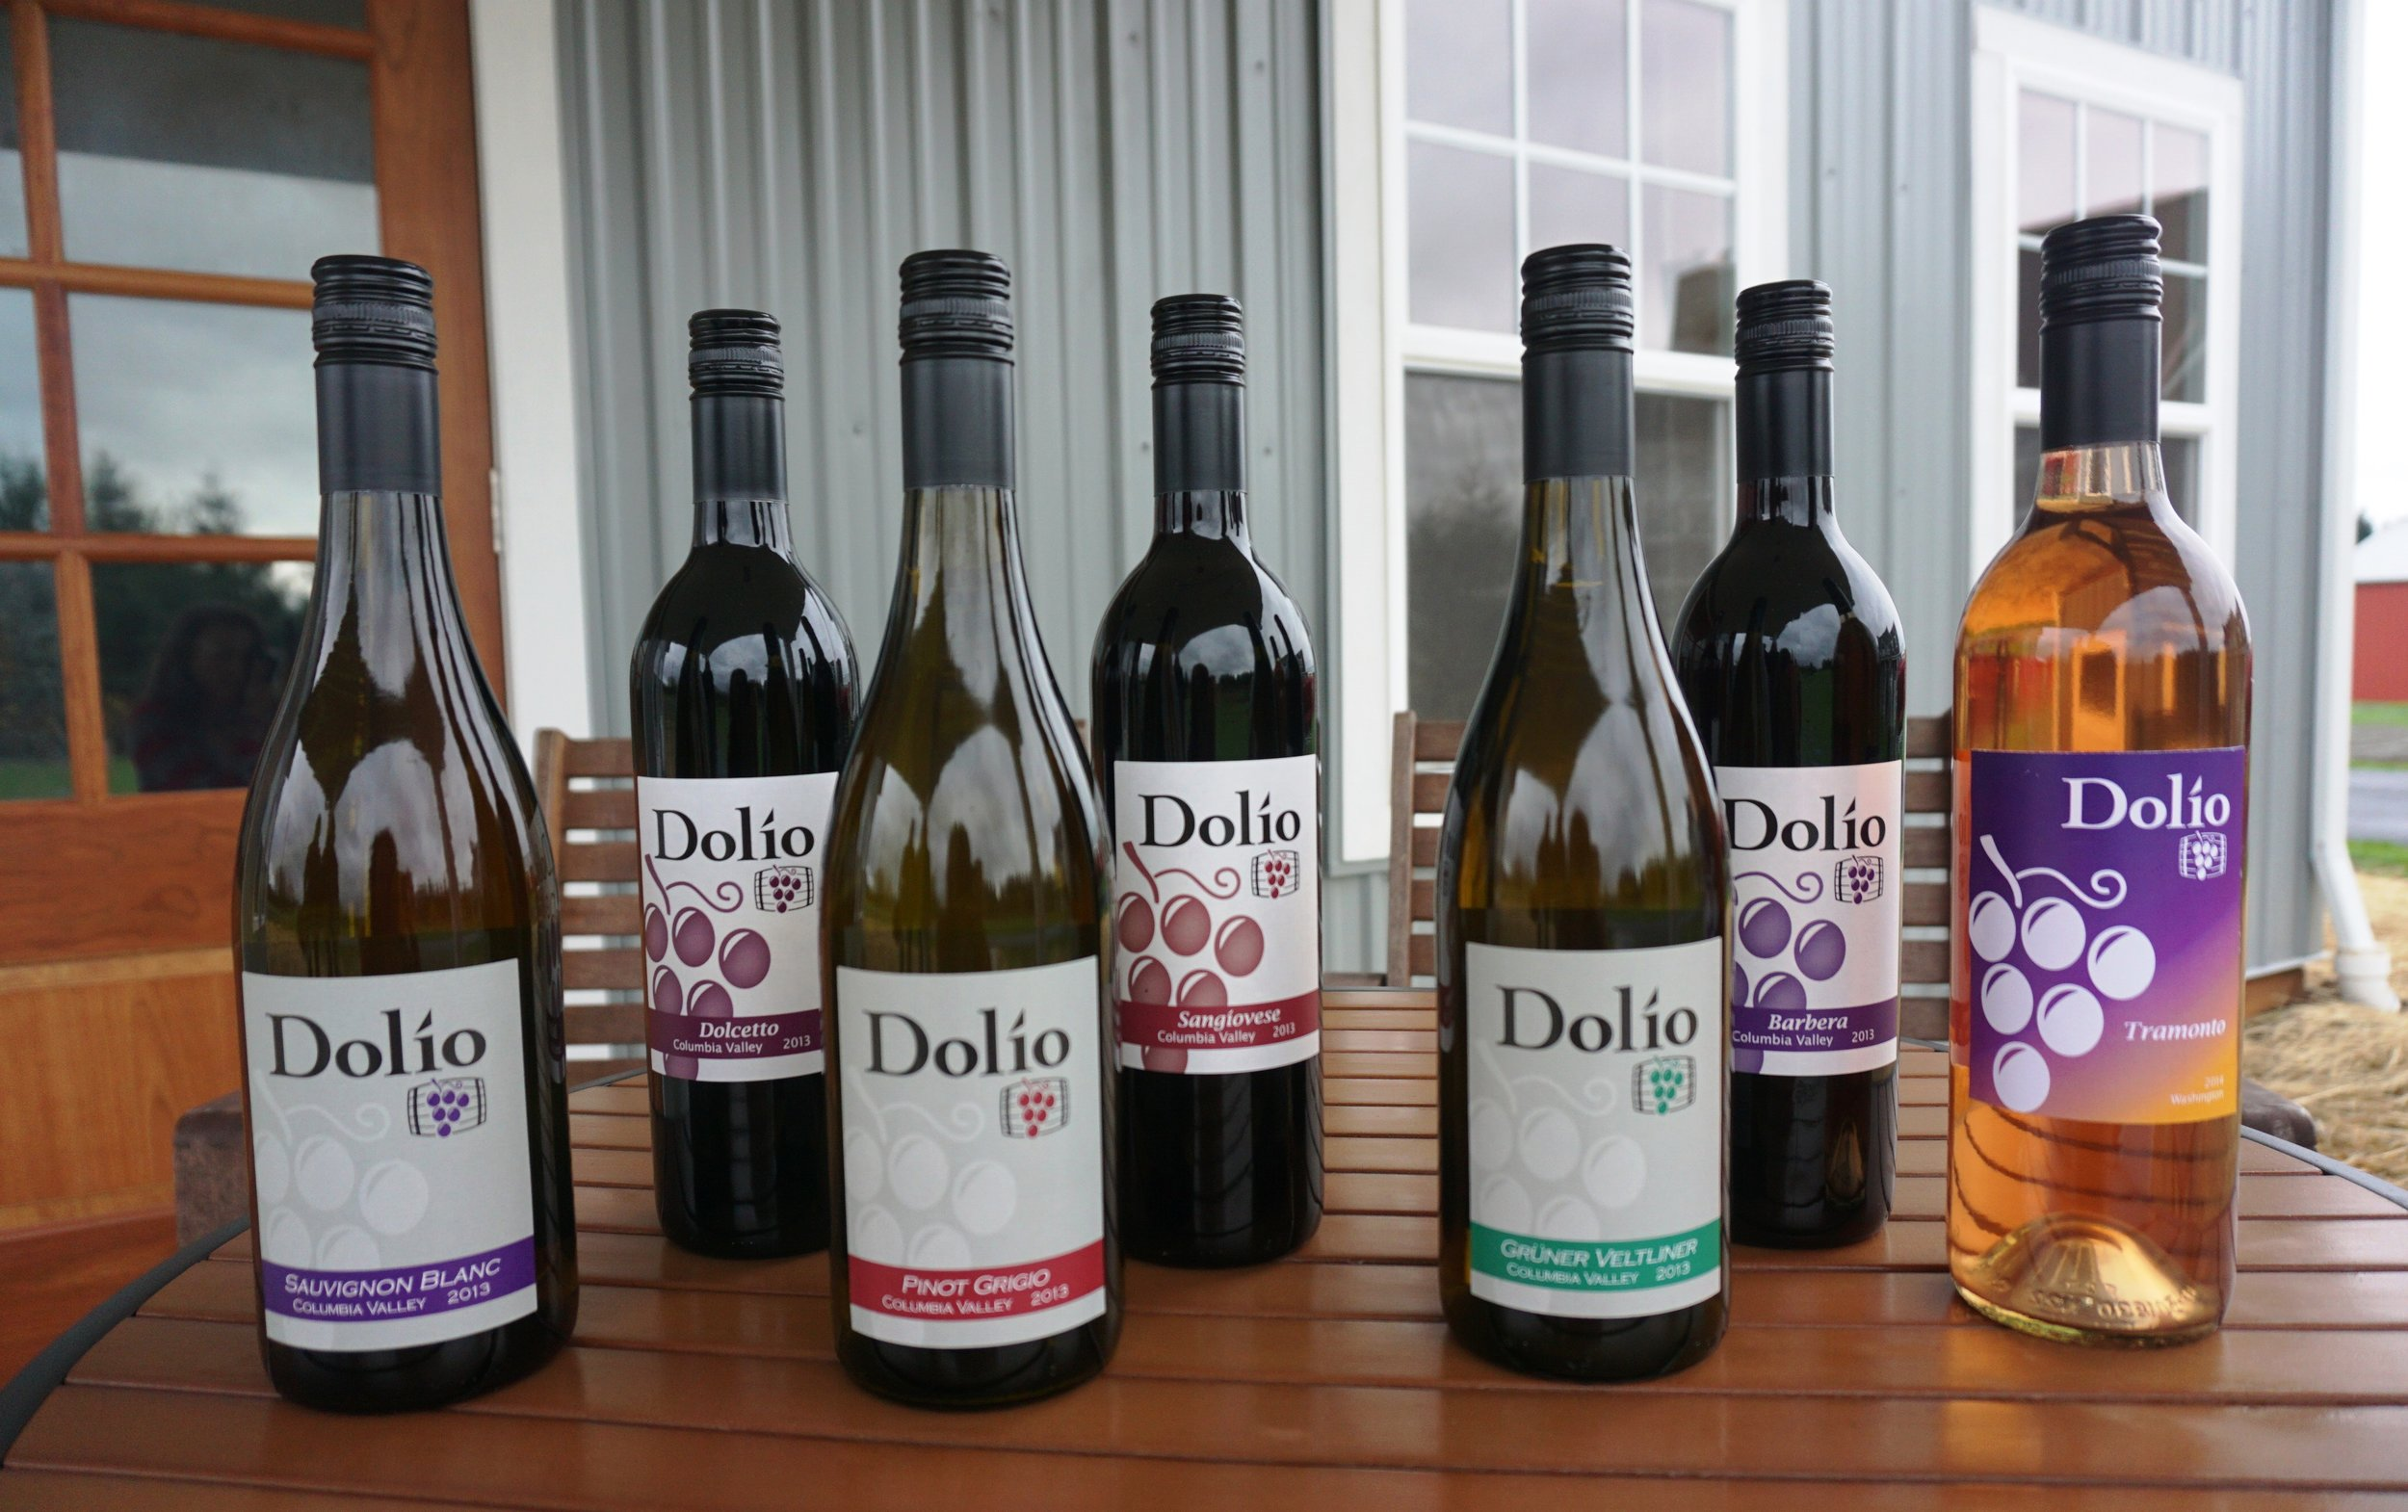 Visitors will be able to sip through Dolio Winery's Columbia Valley line-up of 2013 Pinot Grigio, Sauvignon Blanc, Grüner Veltliner, Dolcetto, Barbera, and Sangiovese during the Southwest Washington Wine Country Thanksgiving Weekend tour. Viki Eierdam